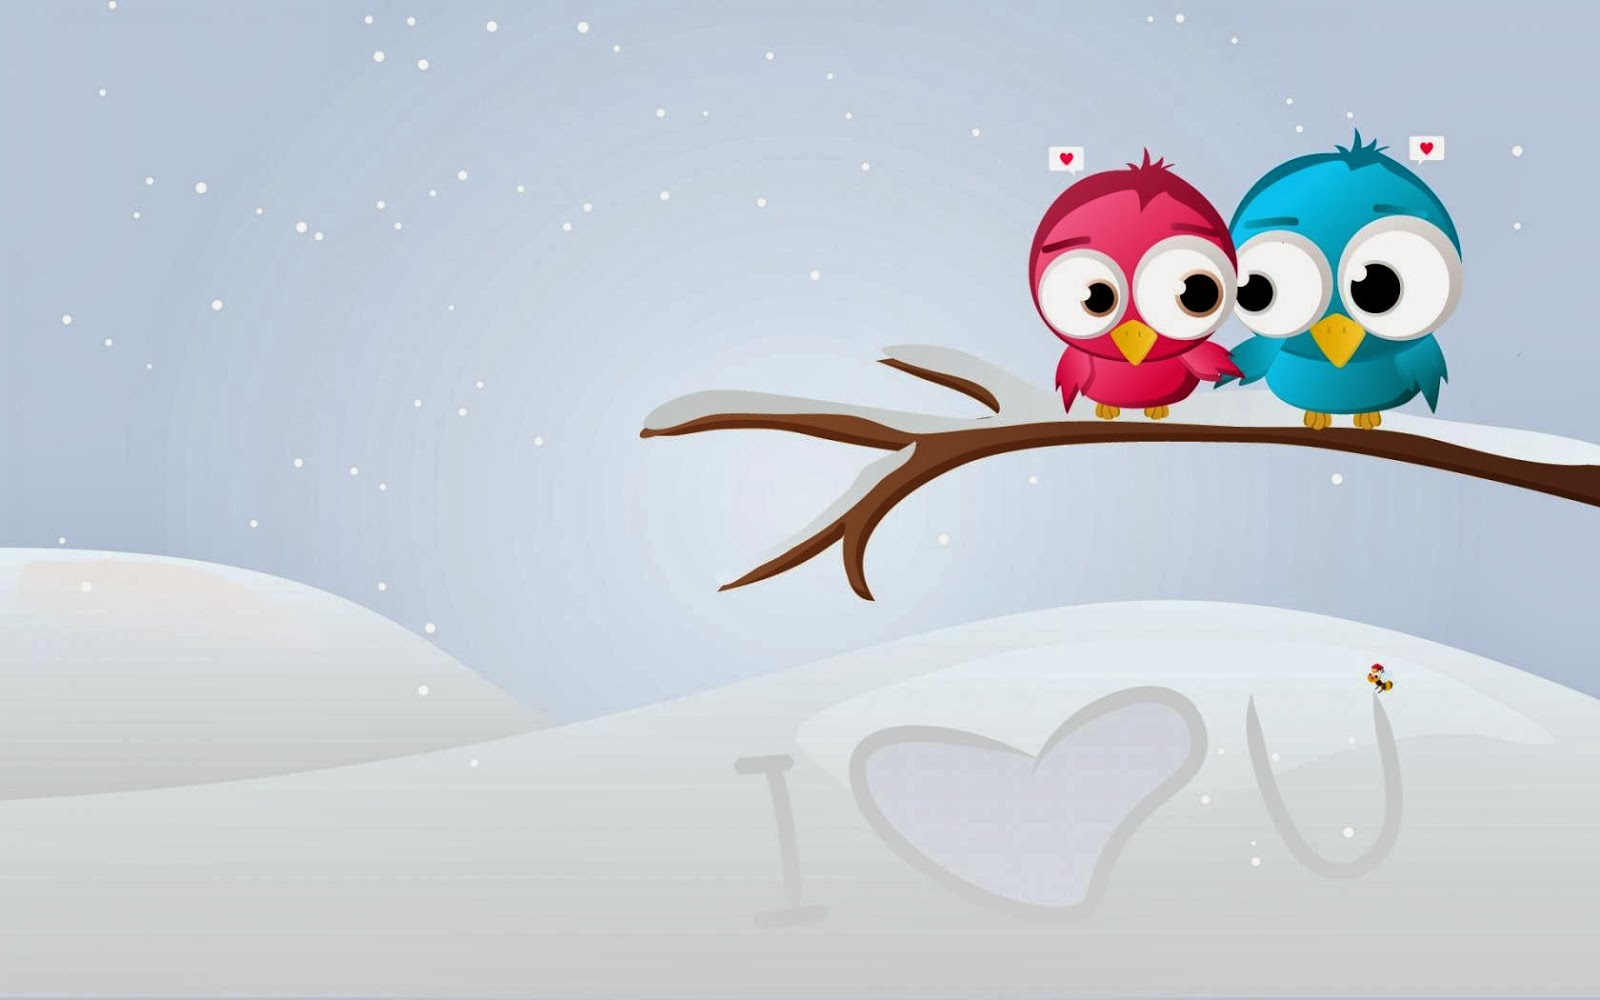 Dwnld Cute Little Bird Walpaper Free Fr Mobile: Cute Little Love Couple Pictures HD Free Download